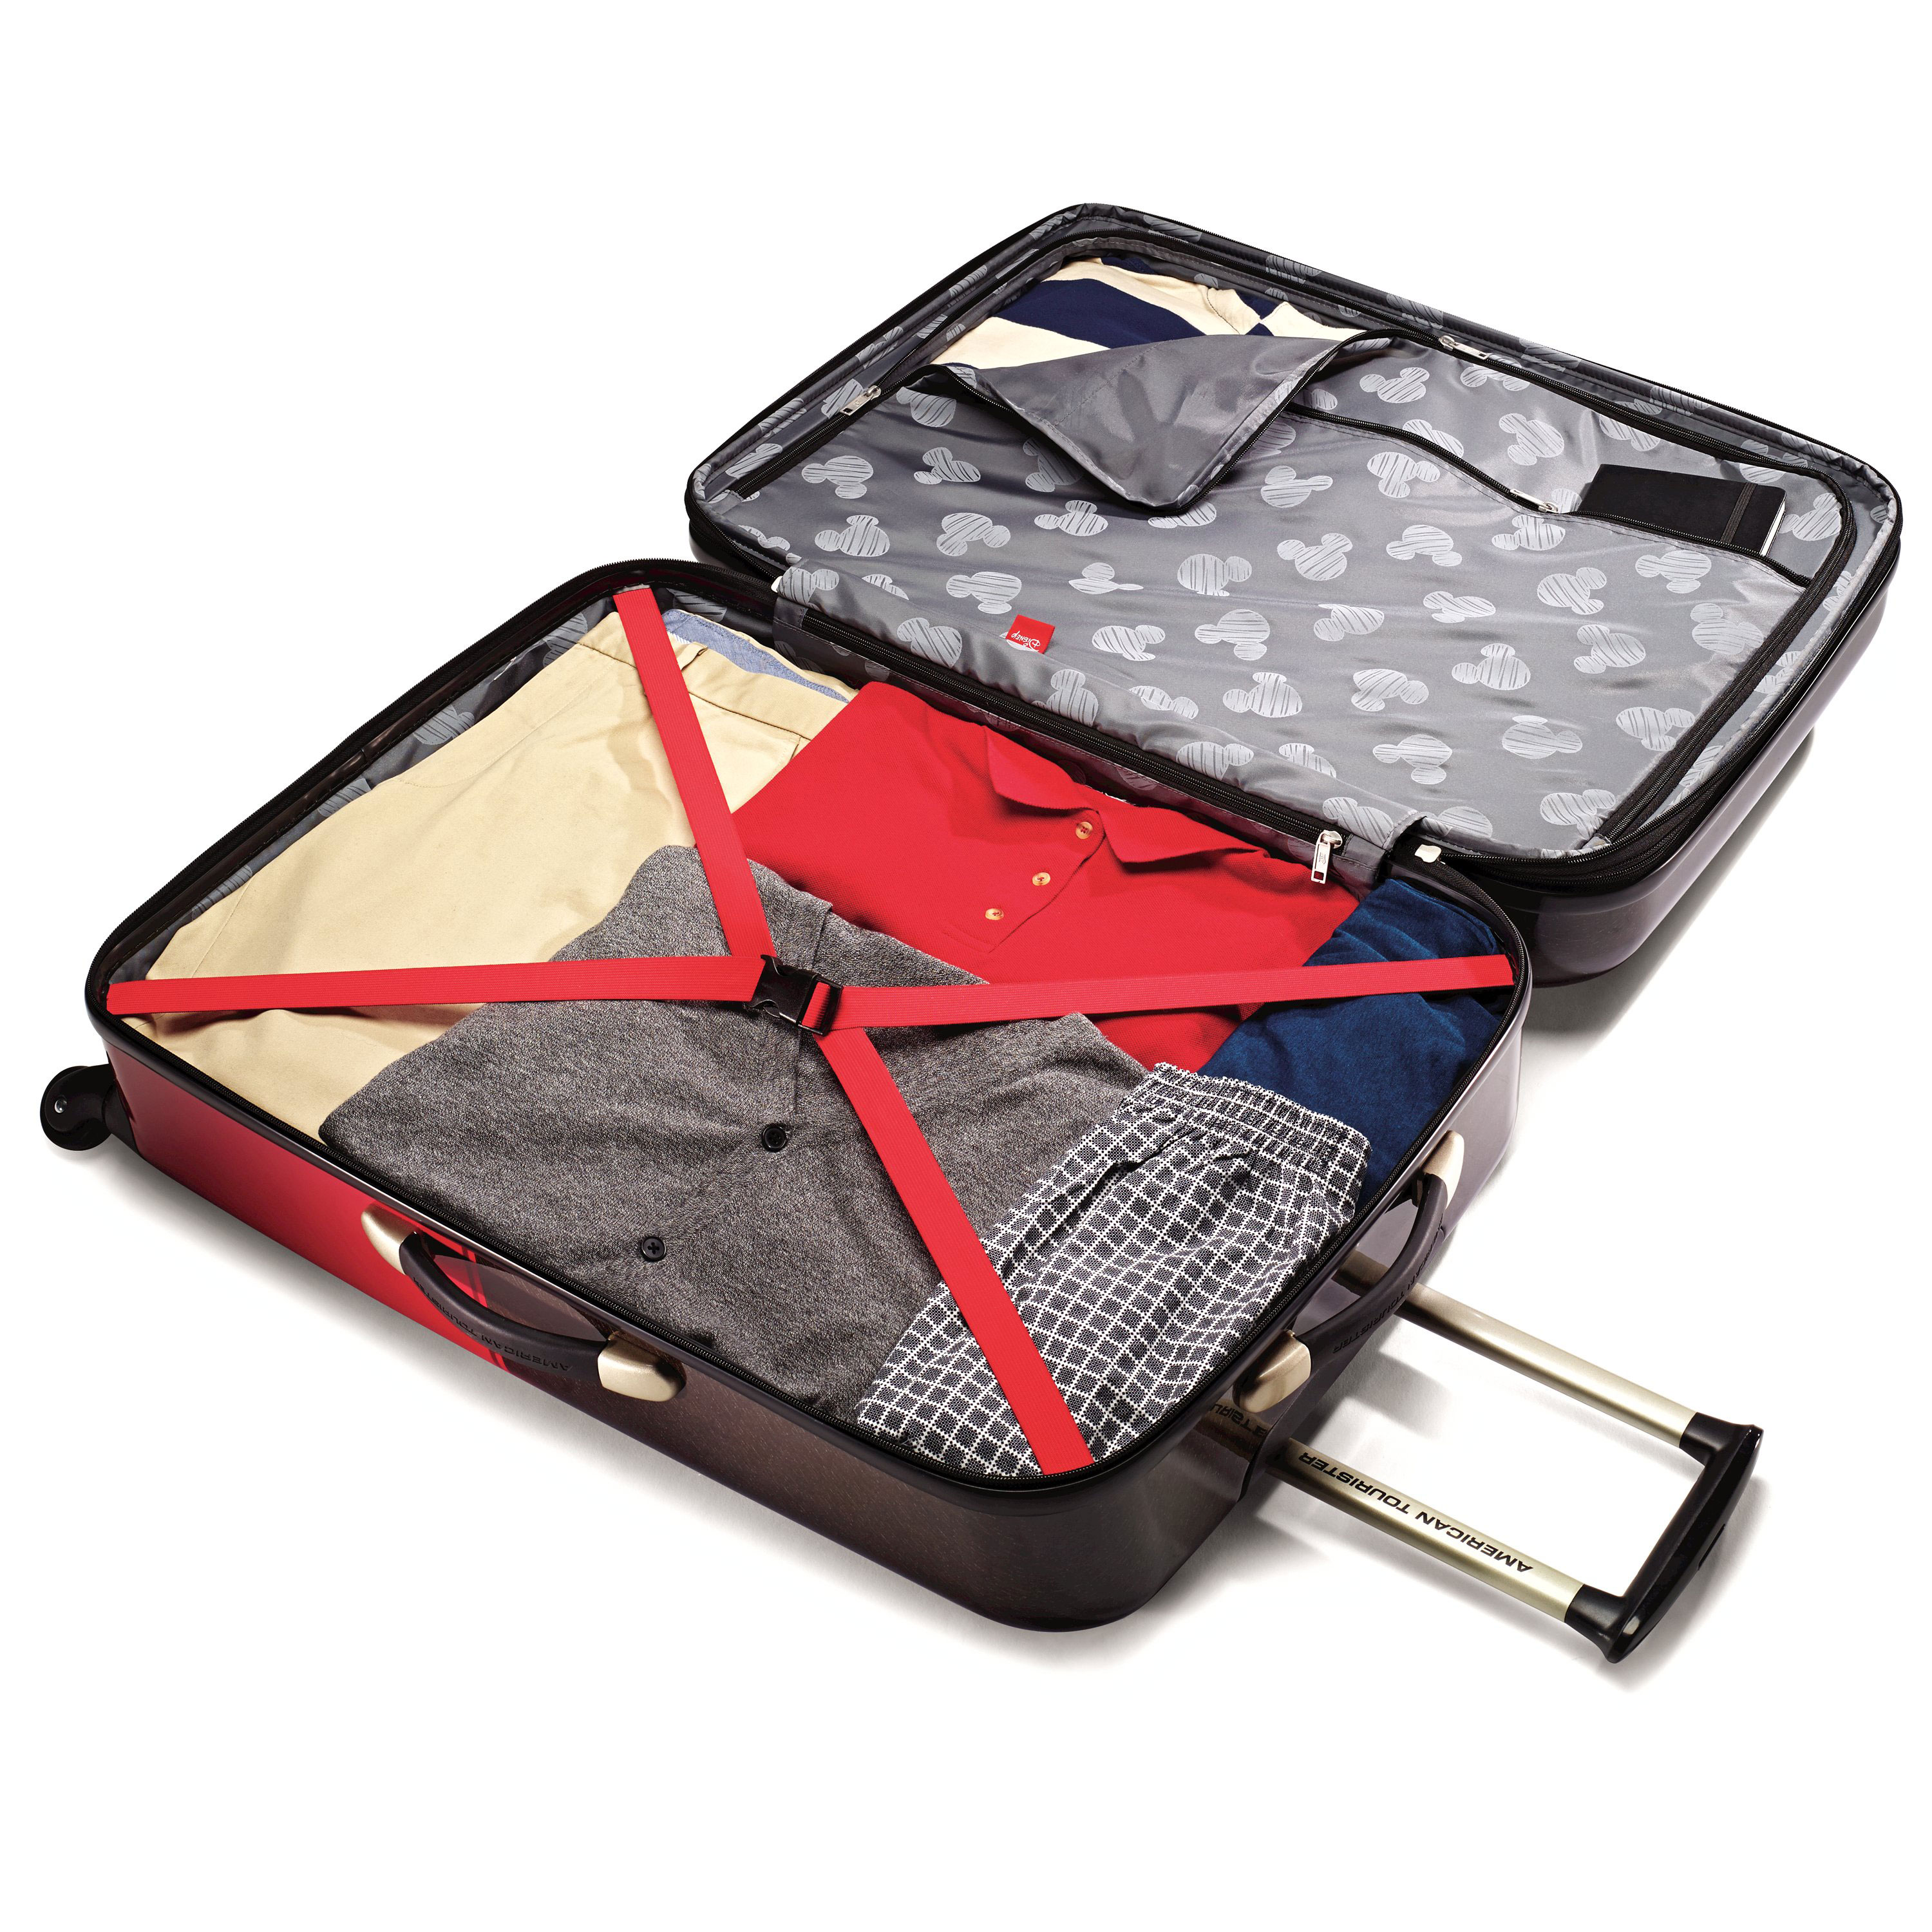 American-Tourister-Disney-Mickey-Mouse-Hardside-Spinner-Luggage thumbnail 3